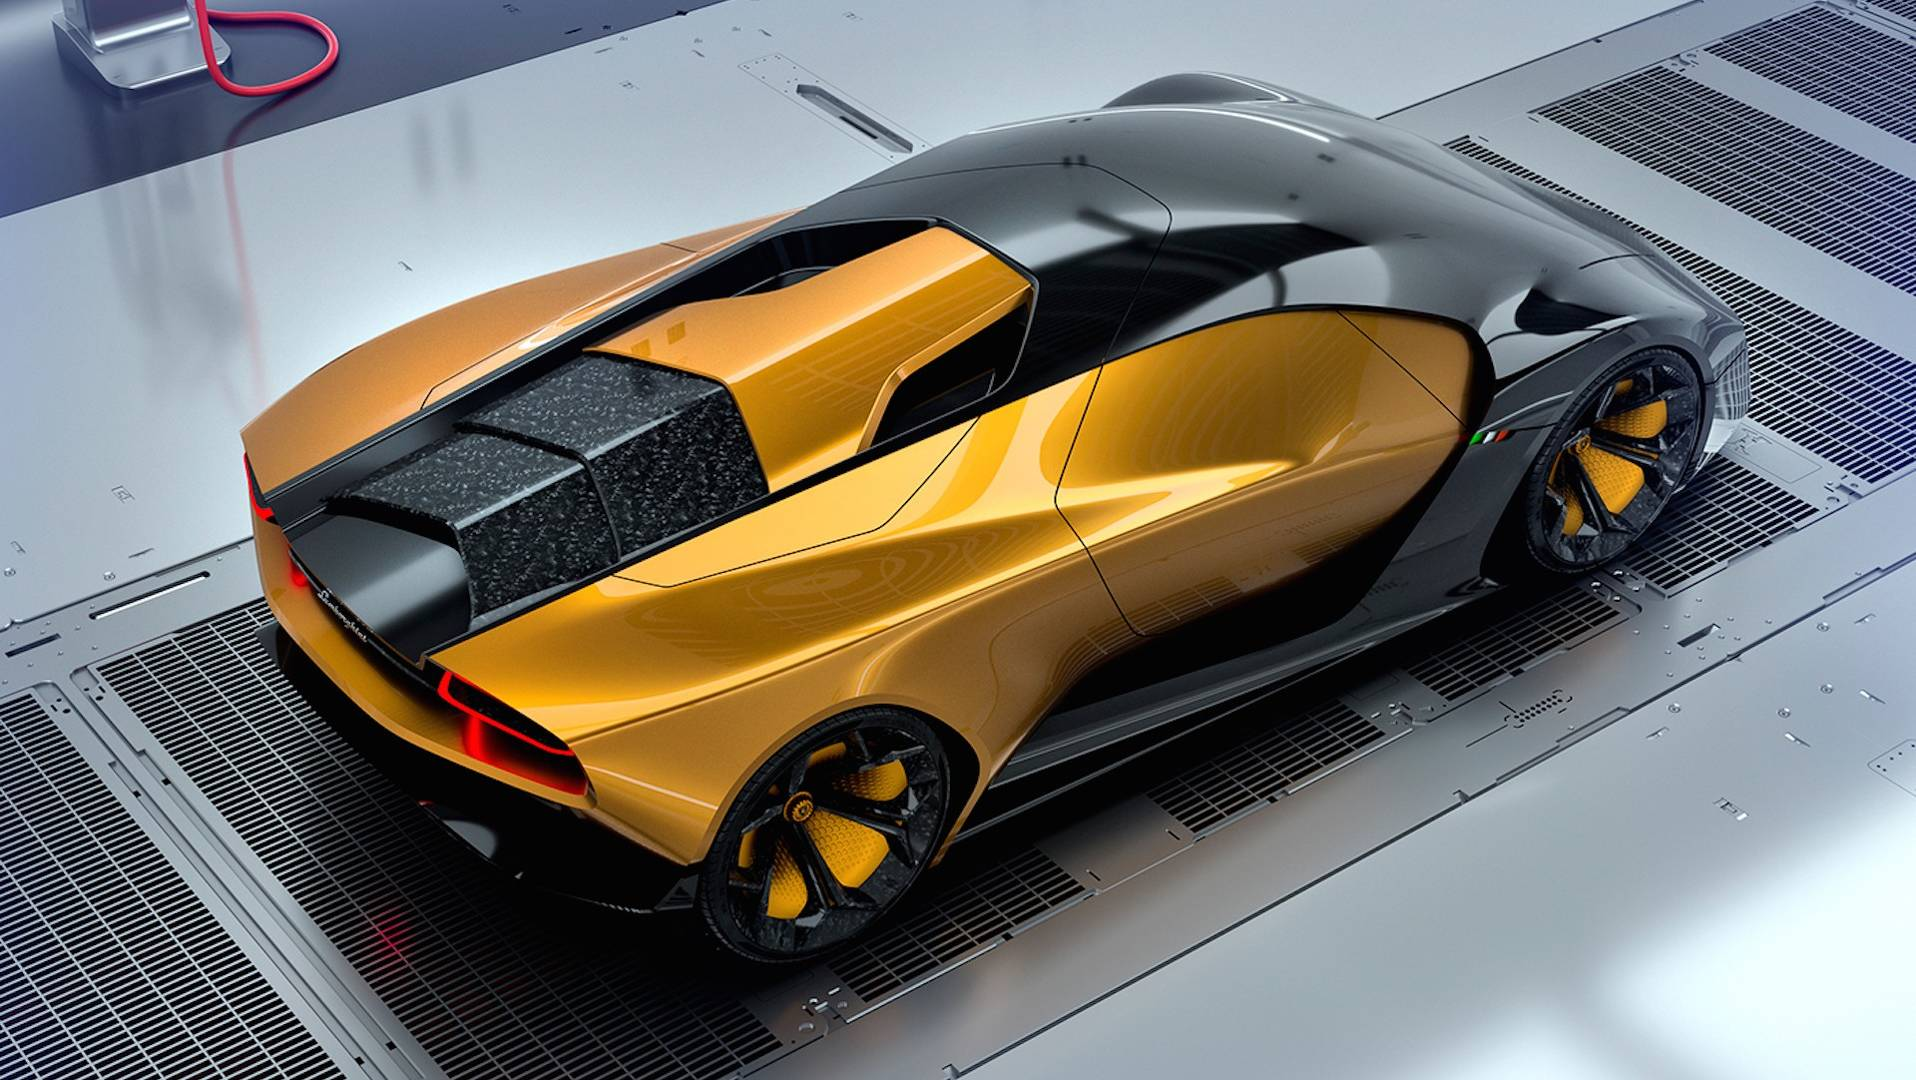 Lamborghini Rendering Imagines The Gold Standard Of Concept Cars on